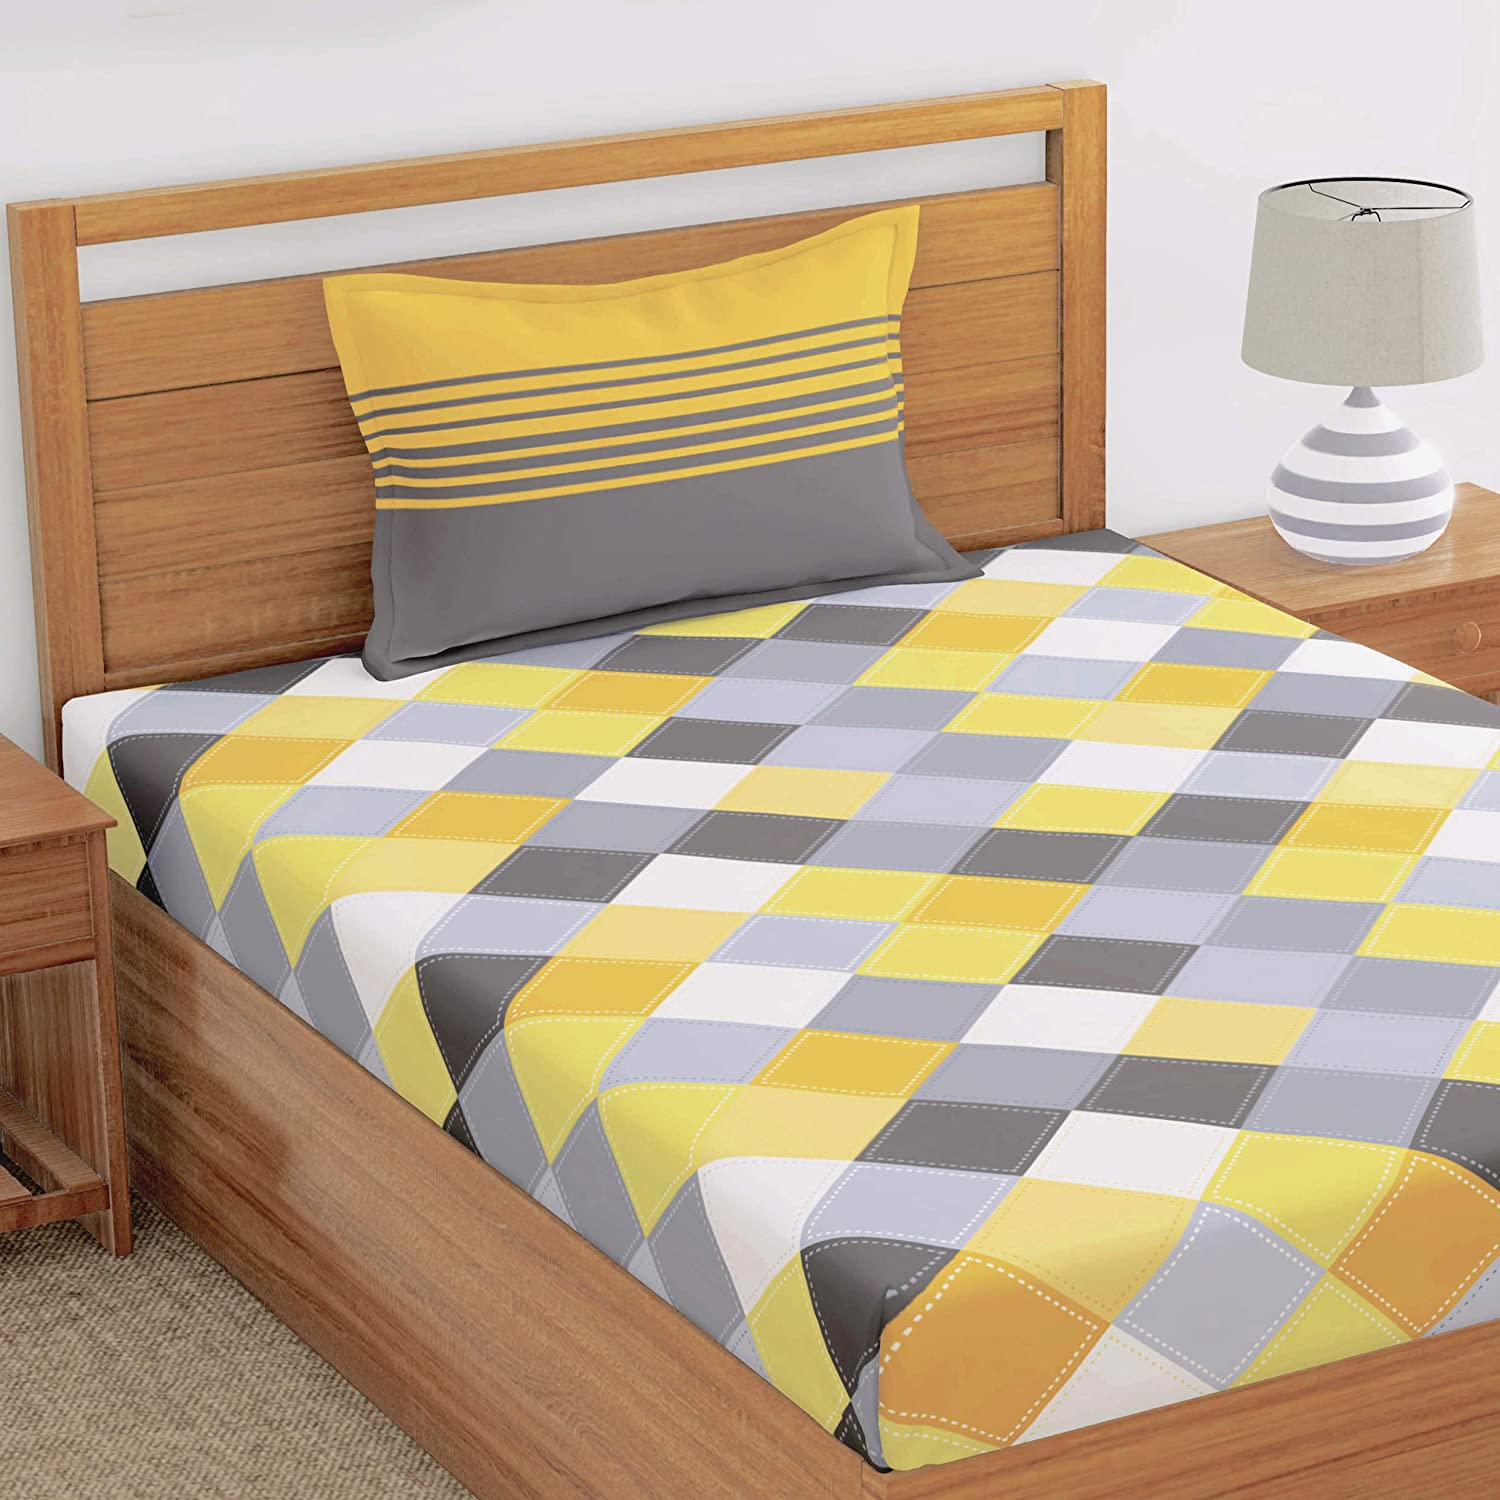 Best Selling Single Bedsheet with Pillow Cover in 2021